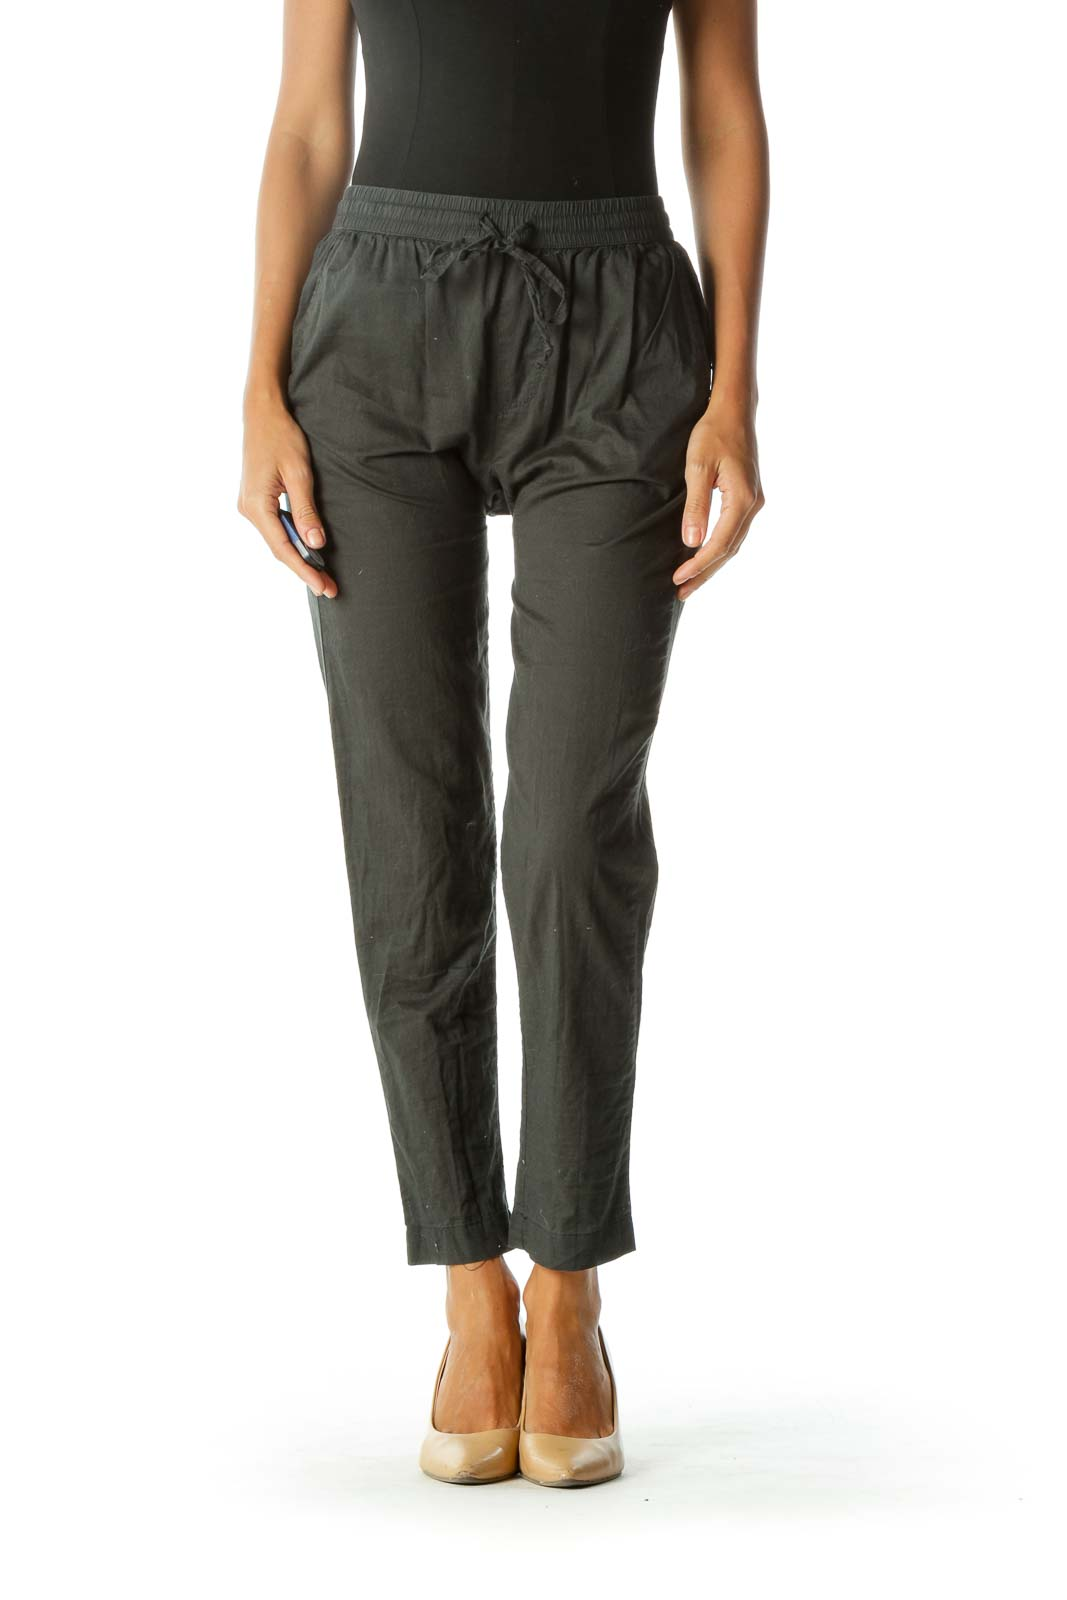 Gray Cotton Casual Pant